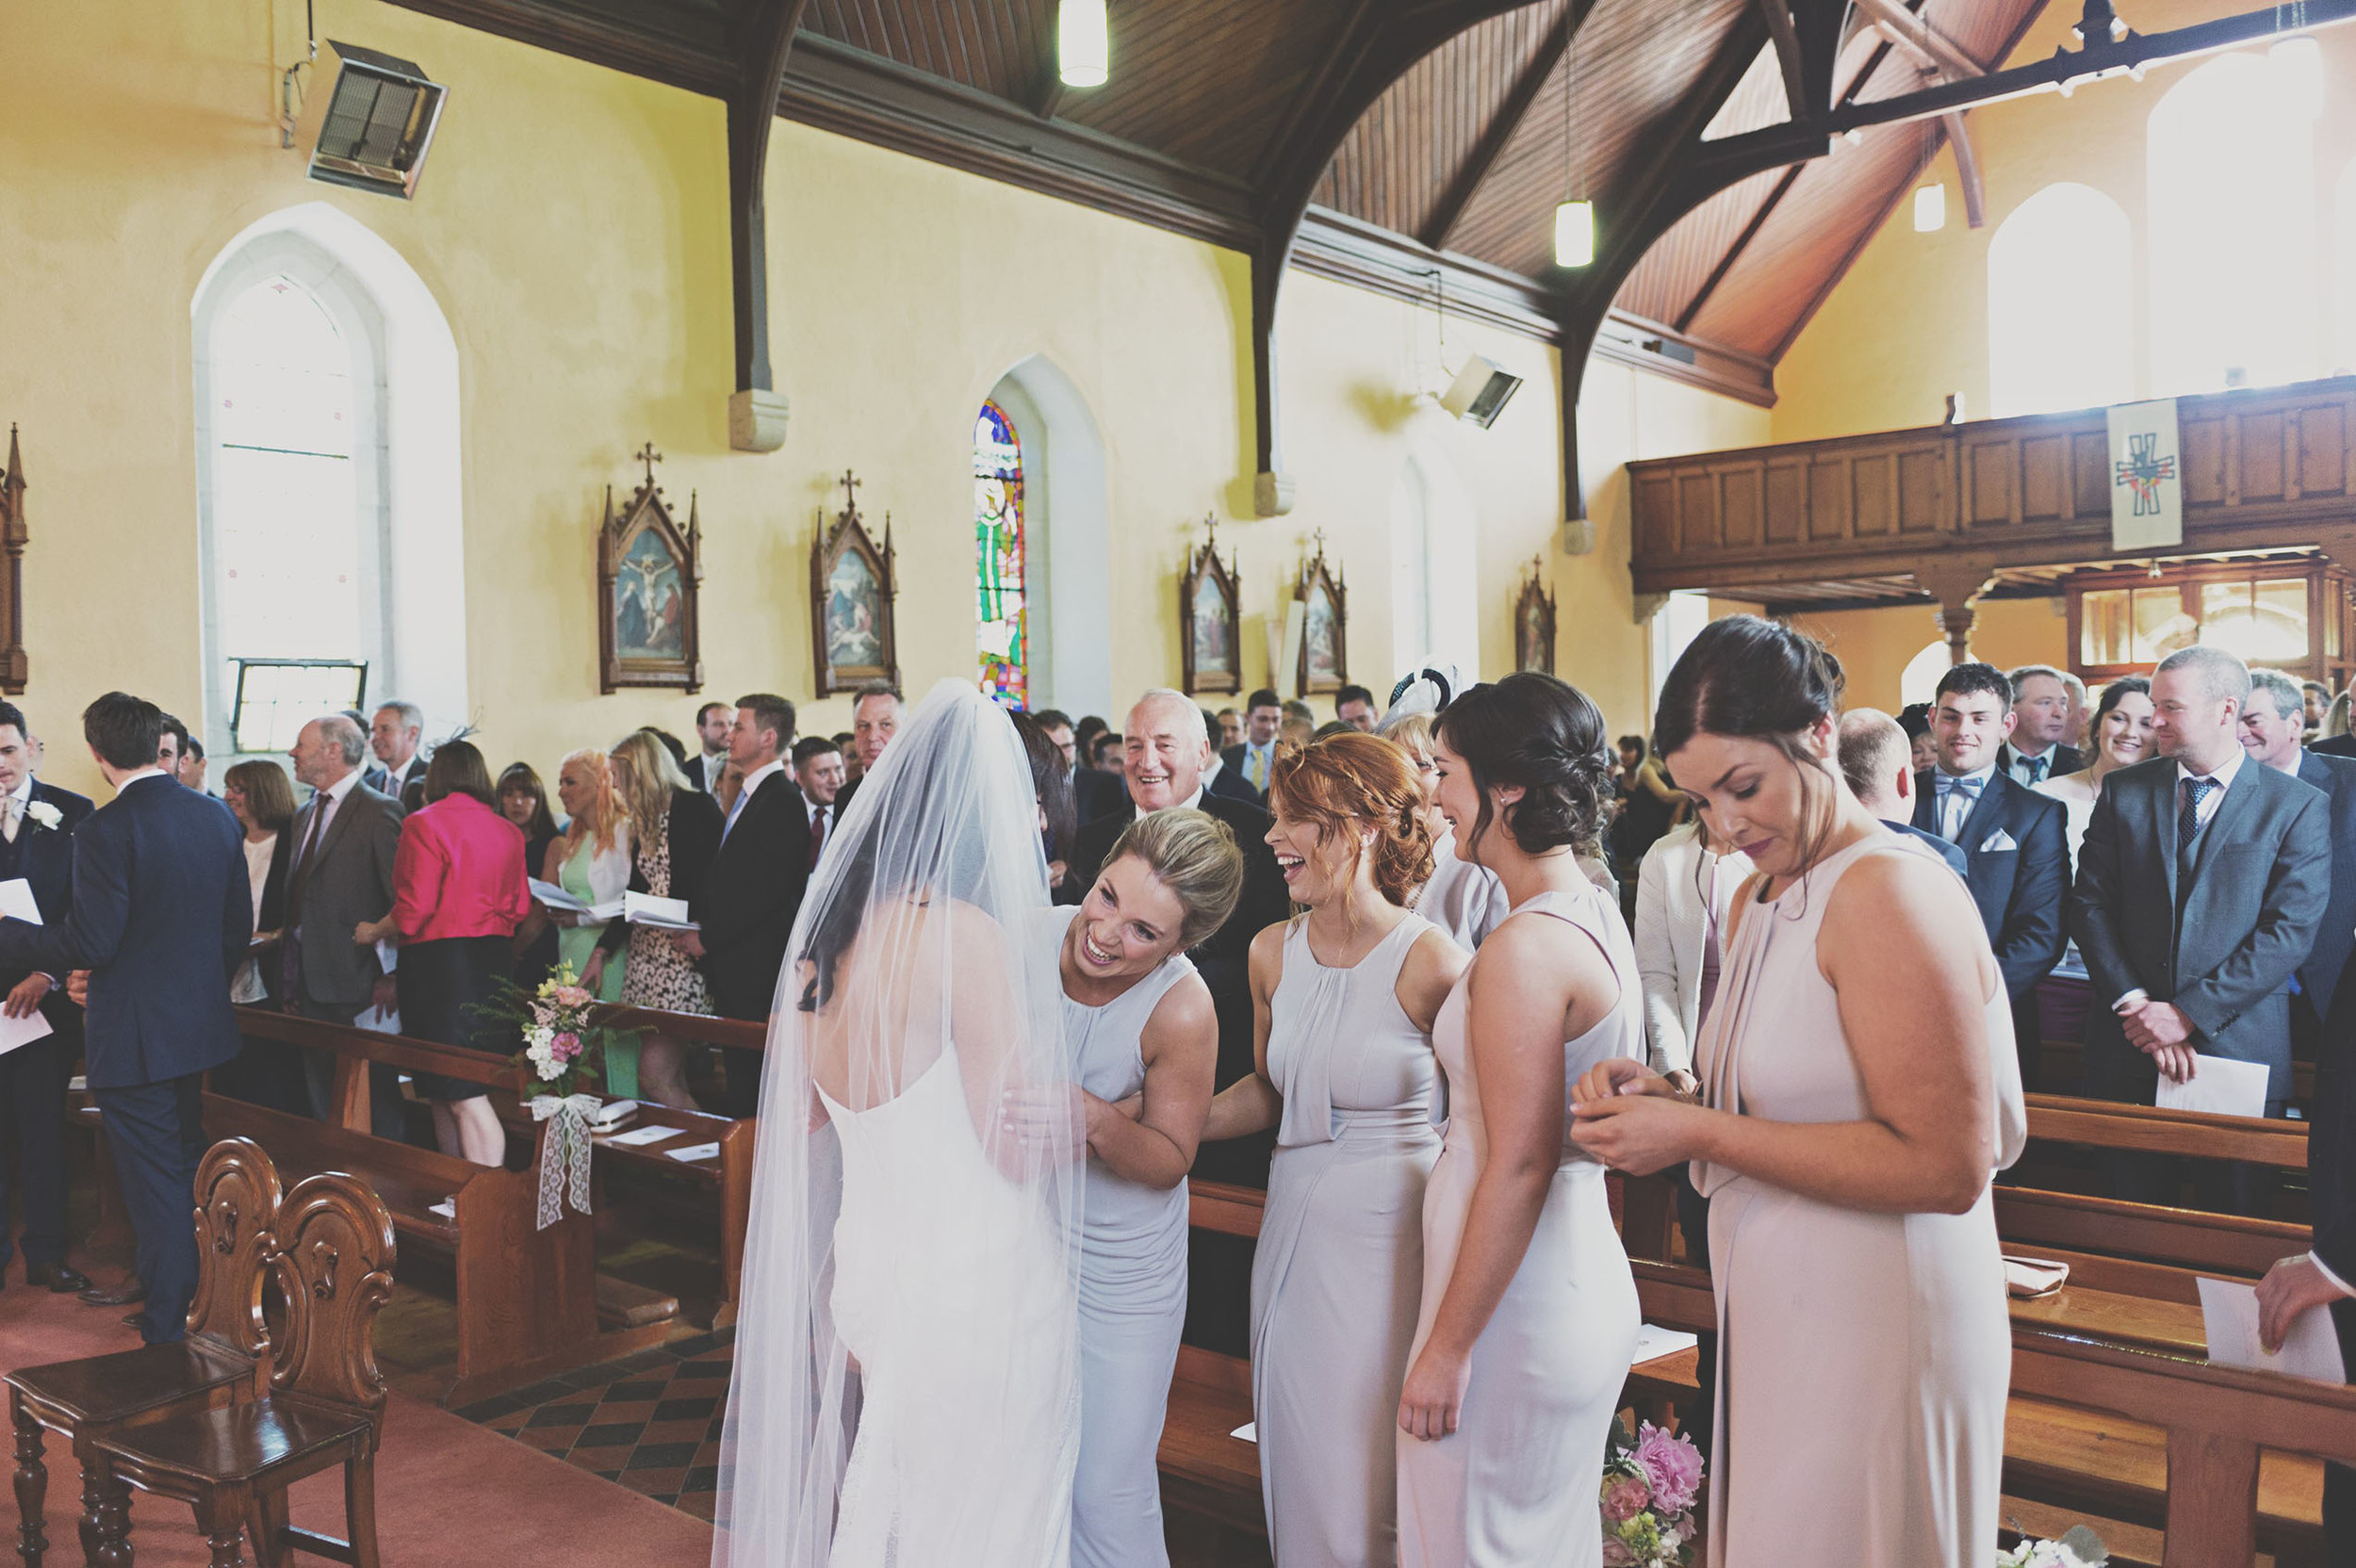 Julie & Matt's Seafield Wedding by Studio33weddings 050.jpg